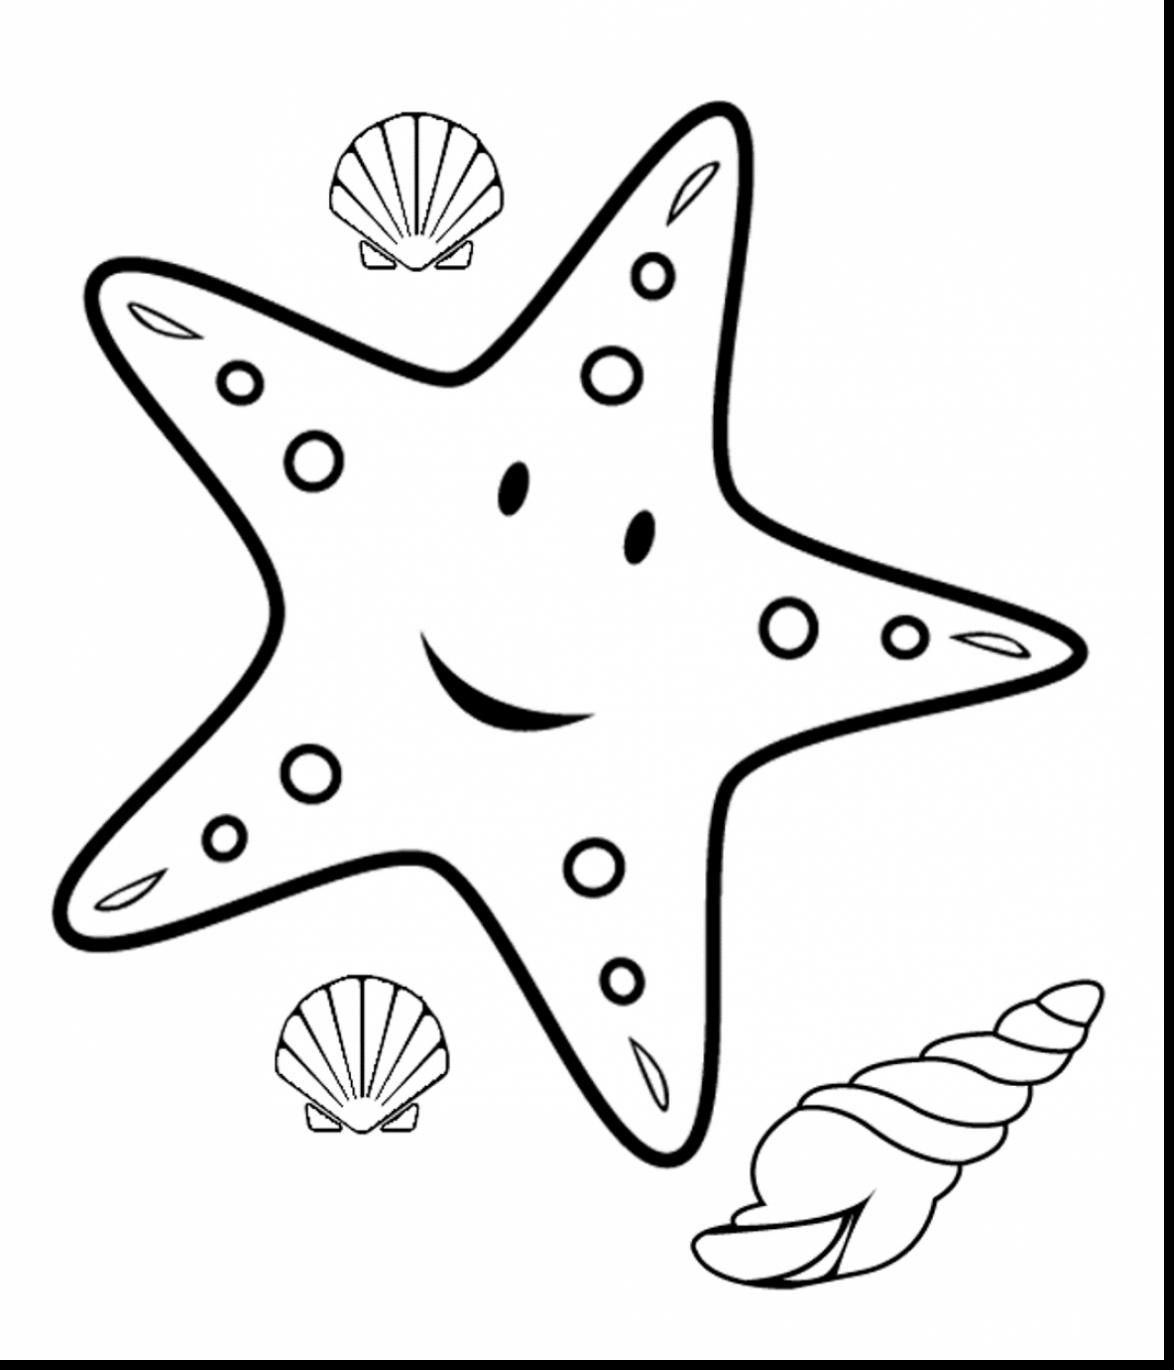 Excellent Starfish Outline Clip Art With Coloring Page